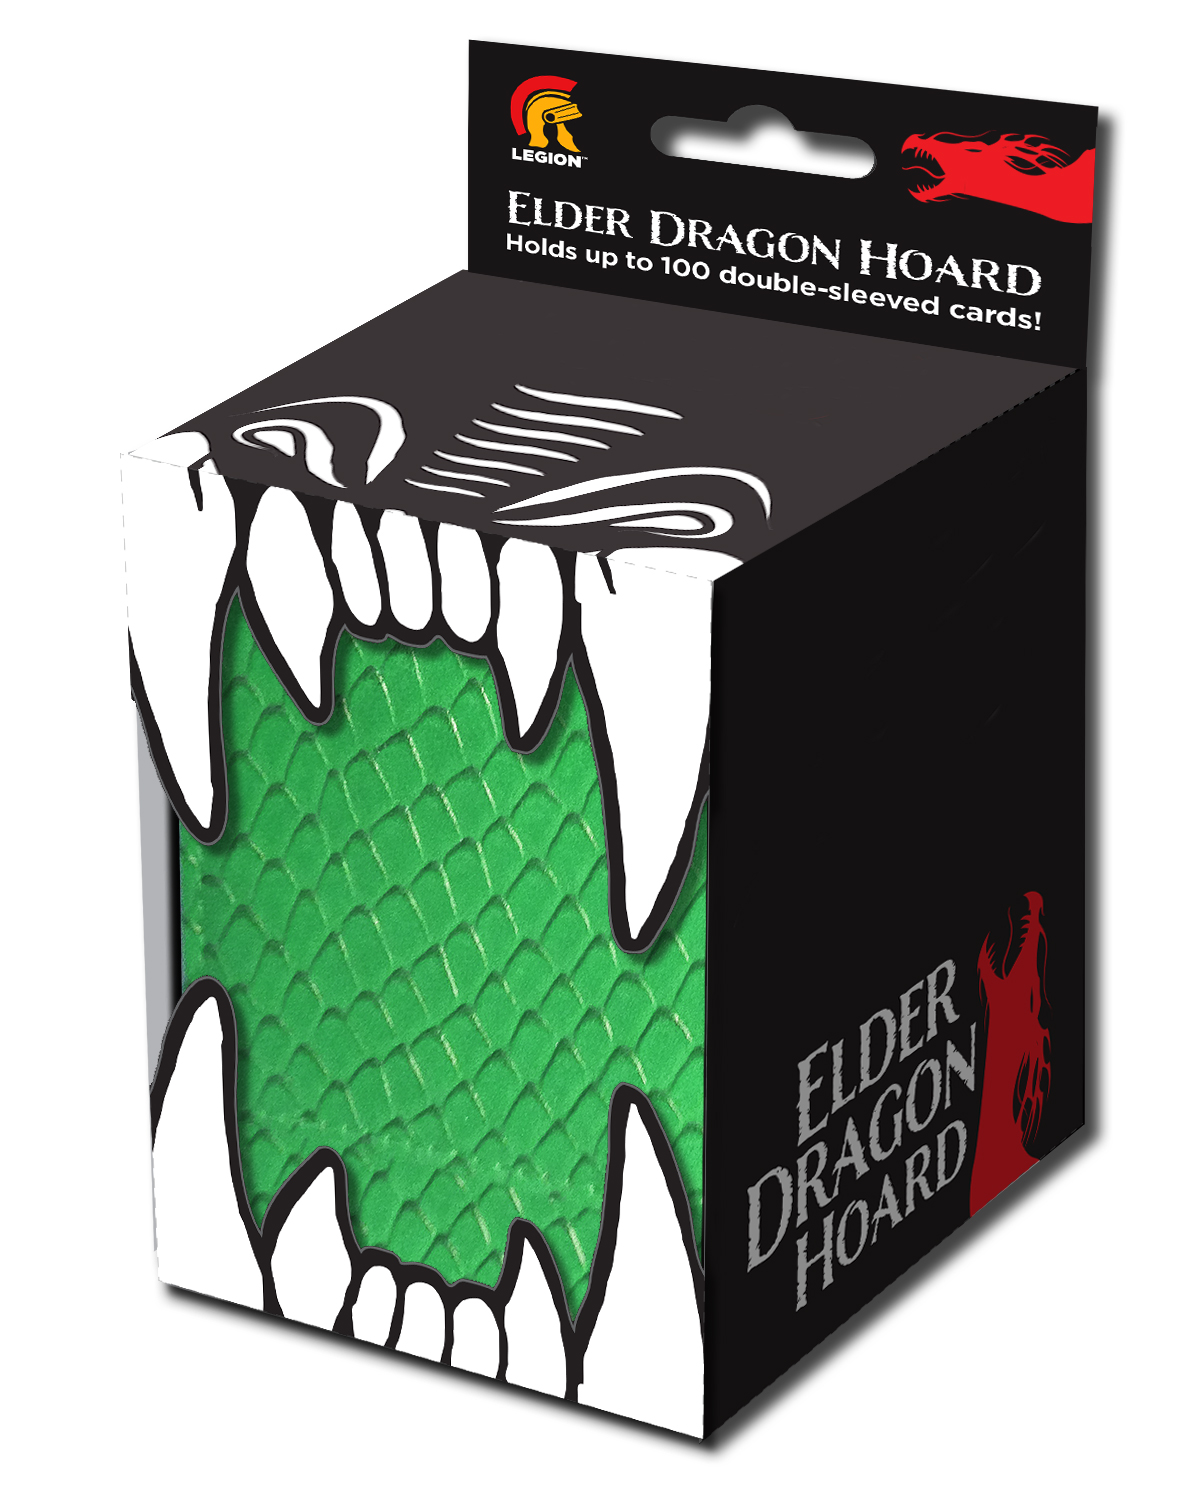 Elder Dragon Hoard Green Deck Box Box Front